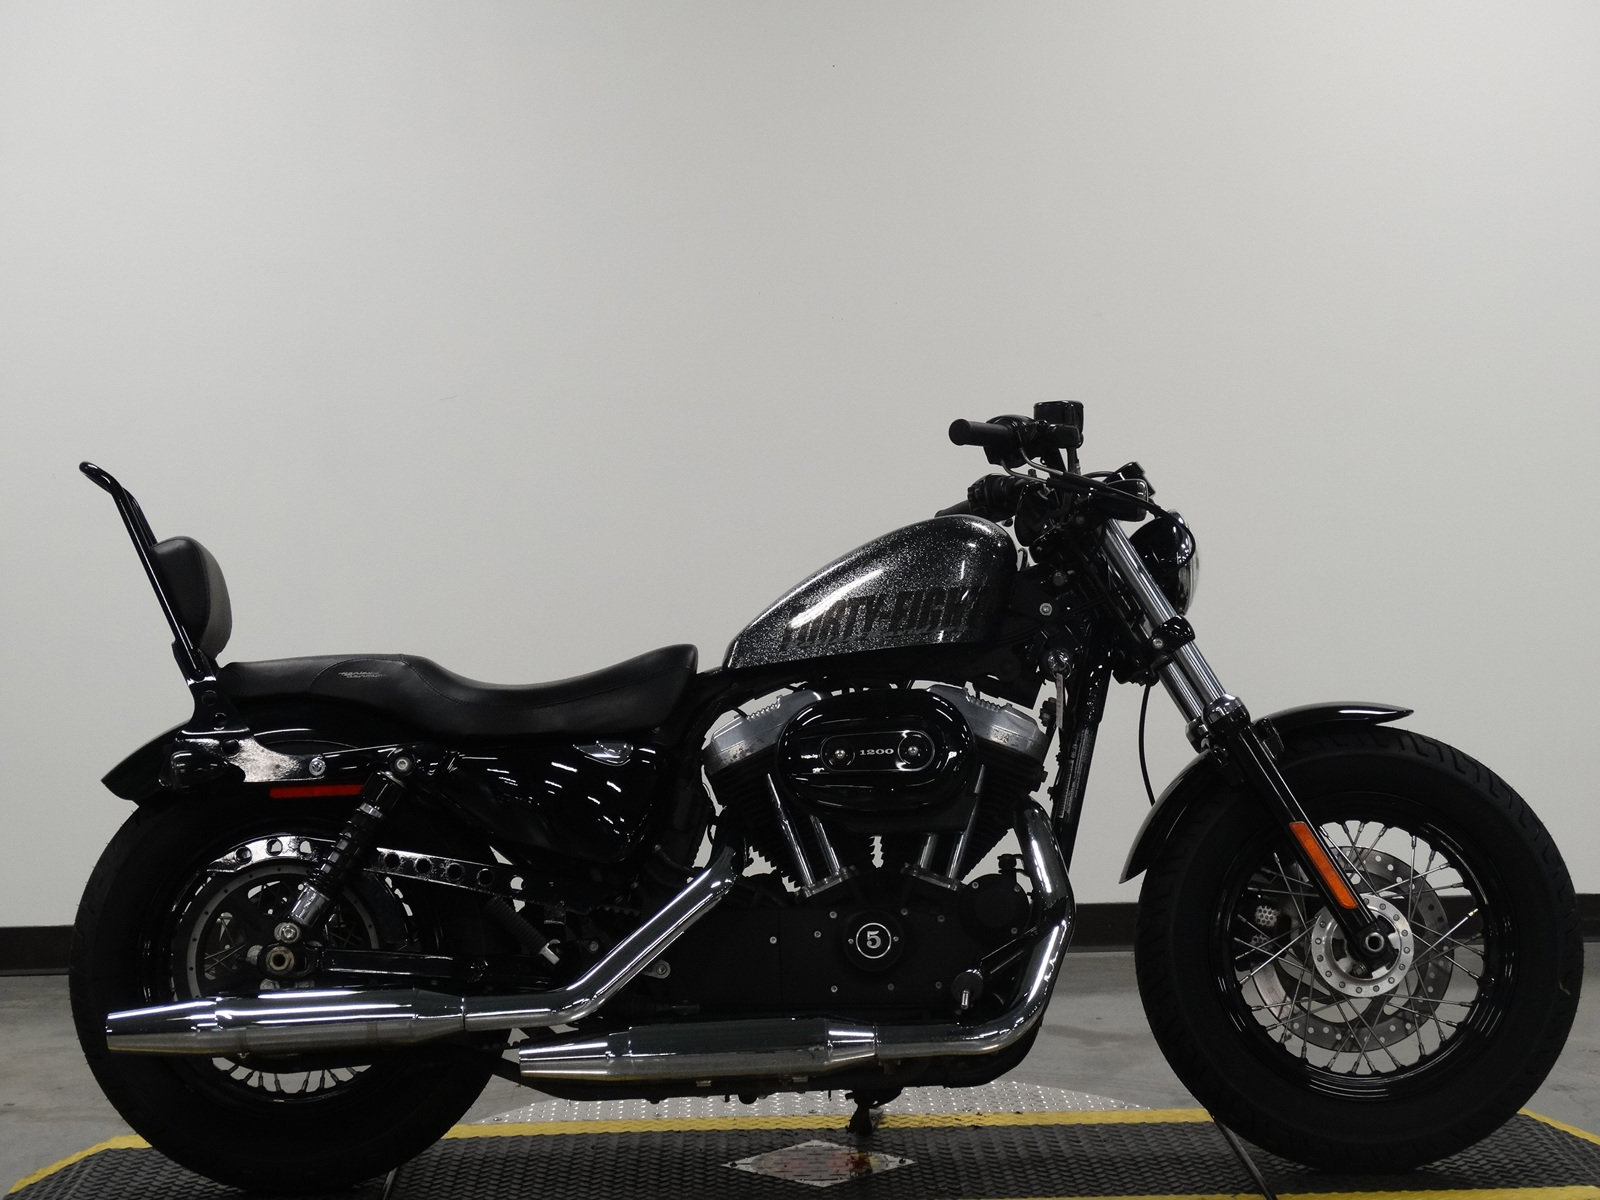 Pre-Owned 2014 Harley-Davidson Sportster Forty-Eight XL1200X